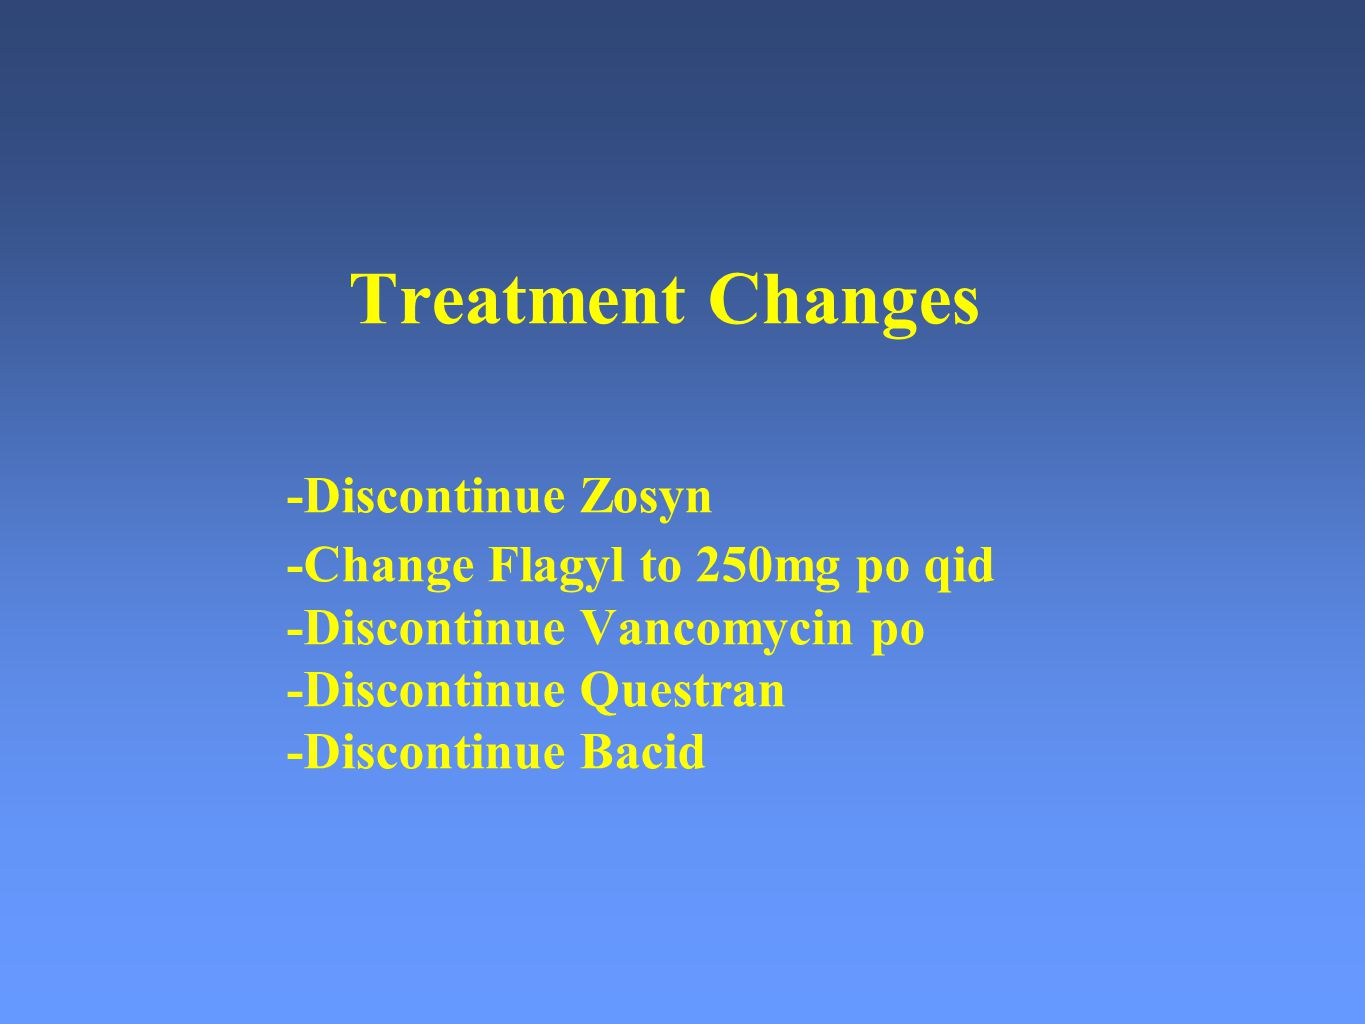 Treatment Changes. -Discontinue Zosyn. -Change Flagyl to 250mg po qid